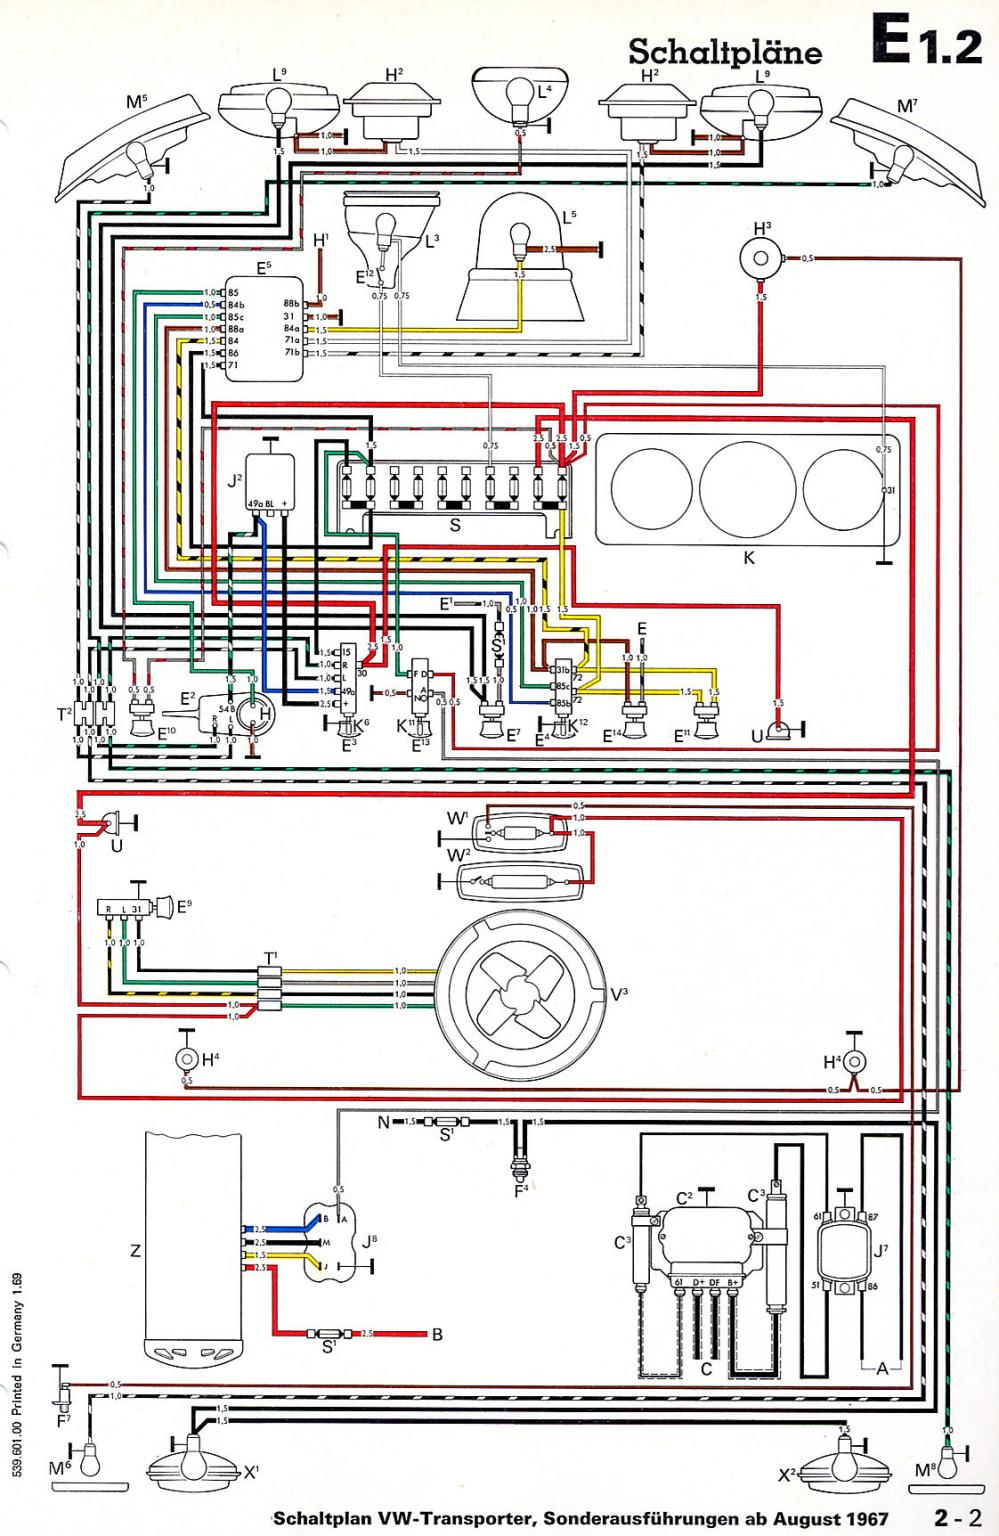 medium resolution of vw t4 wiring diagram free wiring diagram portal vw vanagon camper vw t4 camper wiring diagram